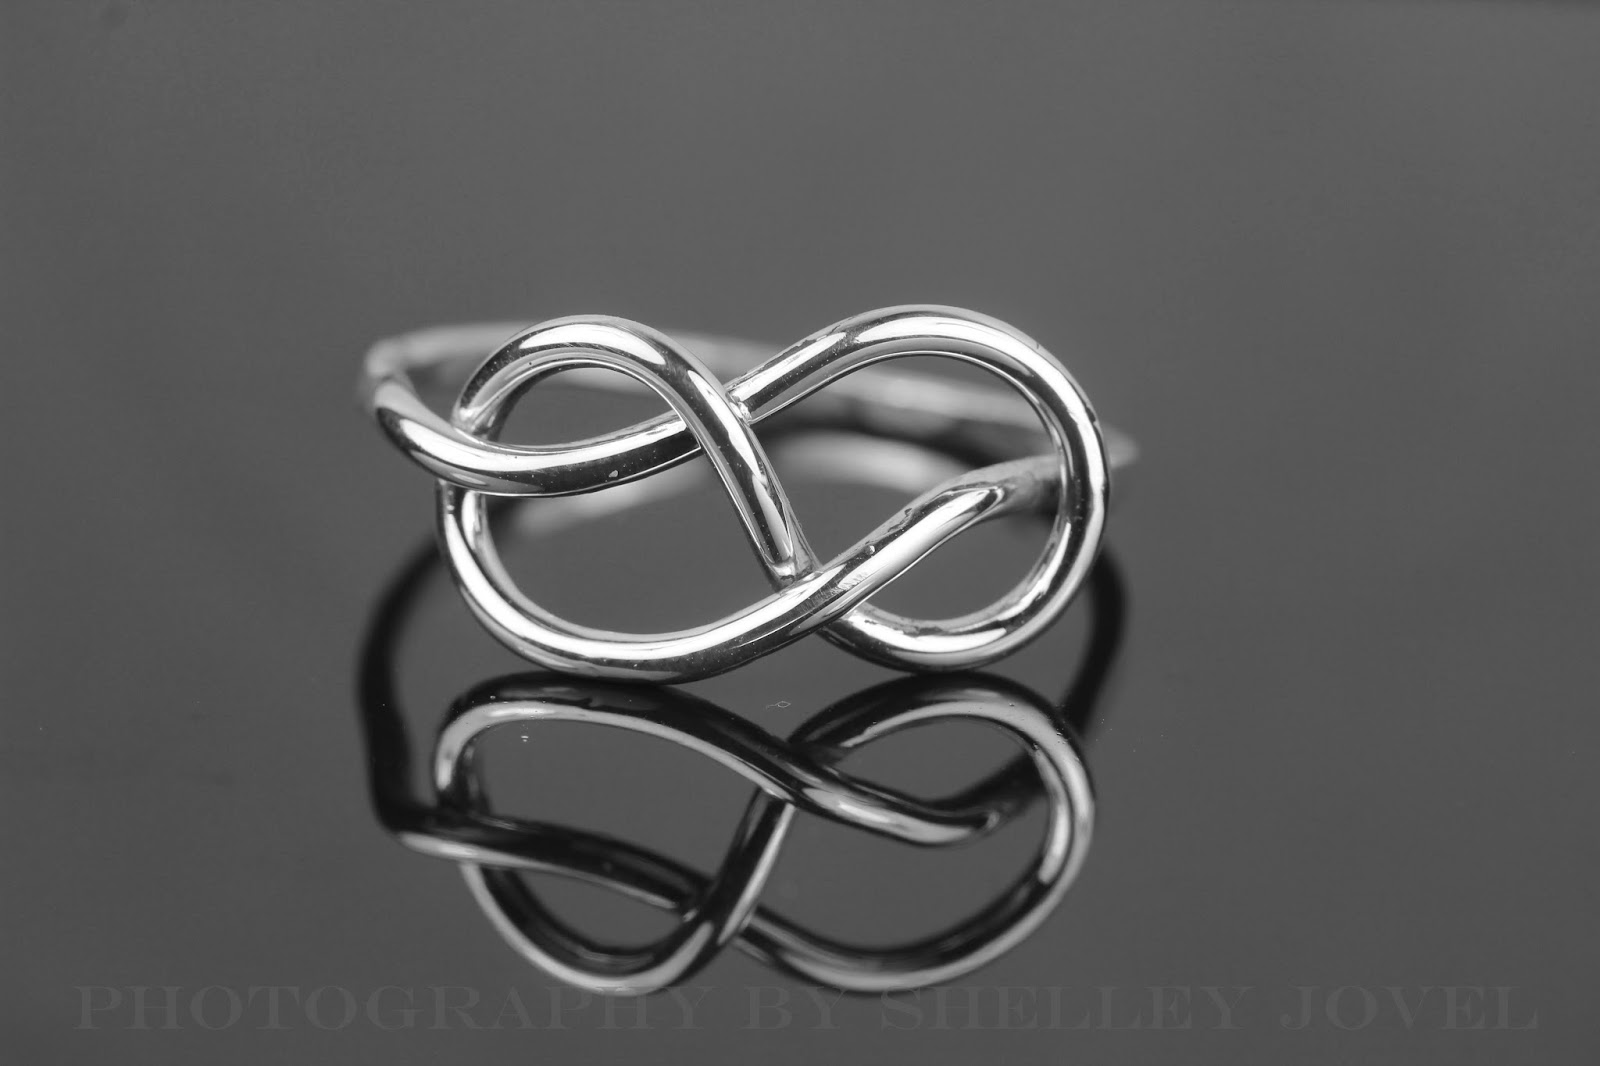 Sparkle bliss jewelry infinity love knot ring process step by step infinity love knot ring process step by step with pictures buycottarizona Choice Image